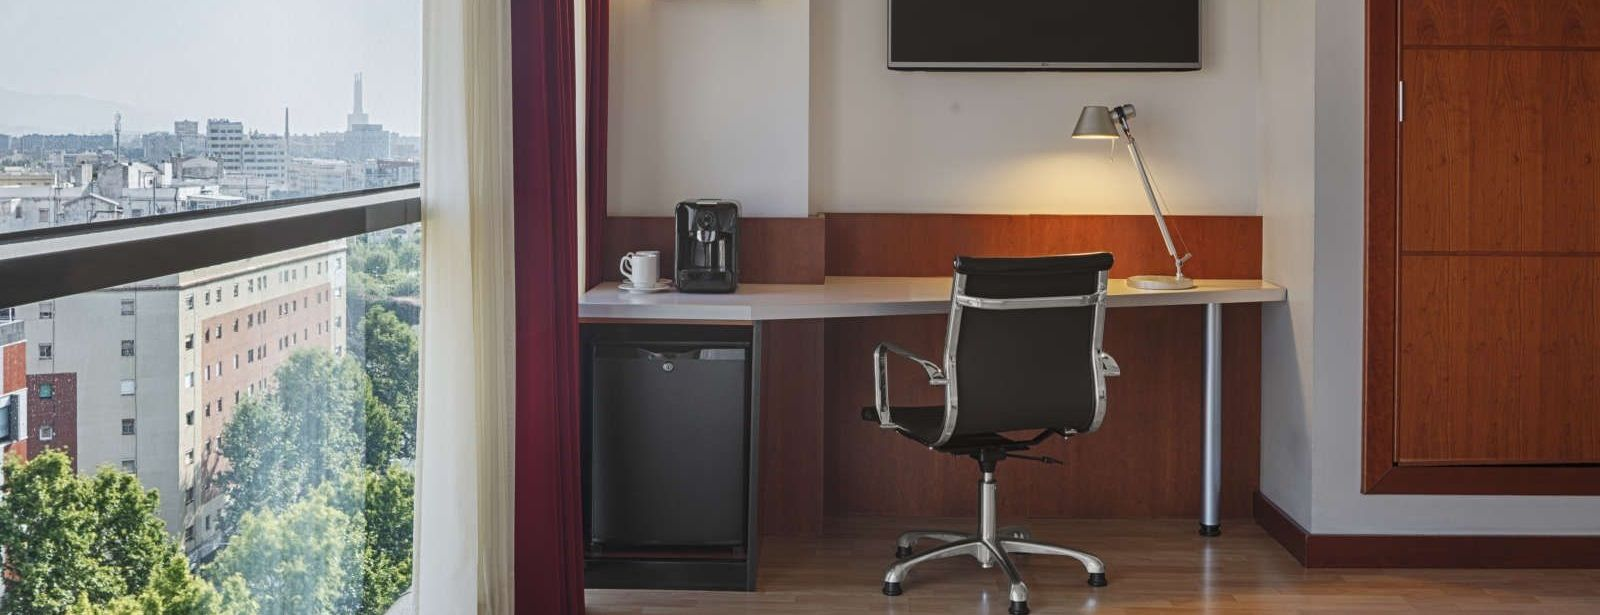 Executive Room Working Desk | Four Points Barcelona Hotel